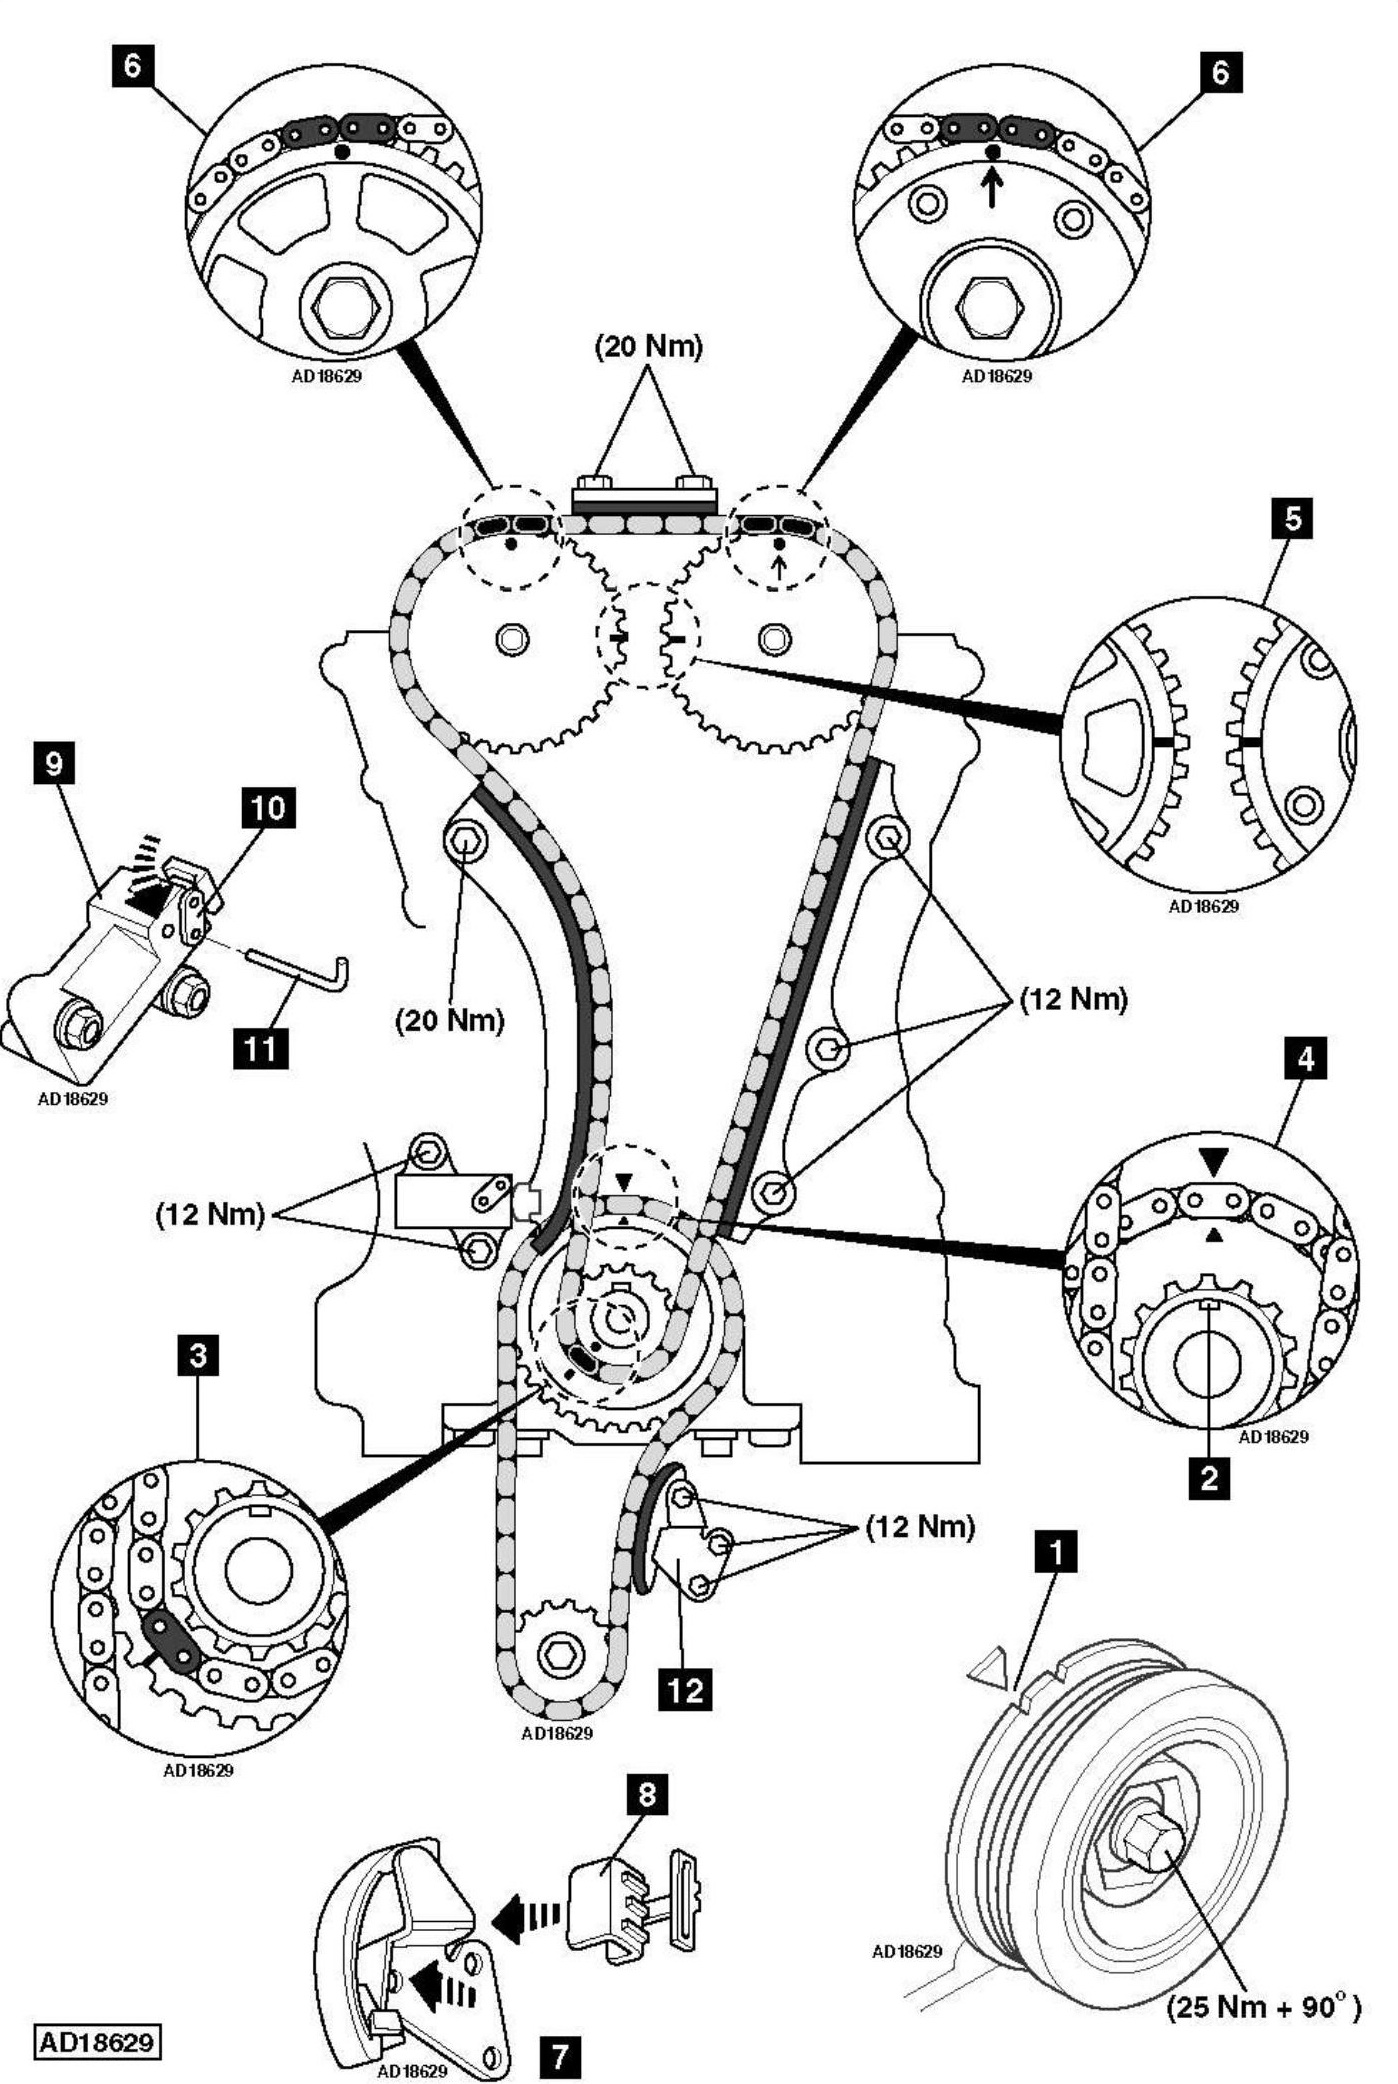 hight resolution of how to replace timing chain on honda accord 2 4 2006 2001 hyundai santa fe serpentine belt diagram 2001 hyundai santa fe serpentine belt diagram